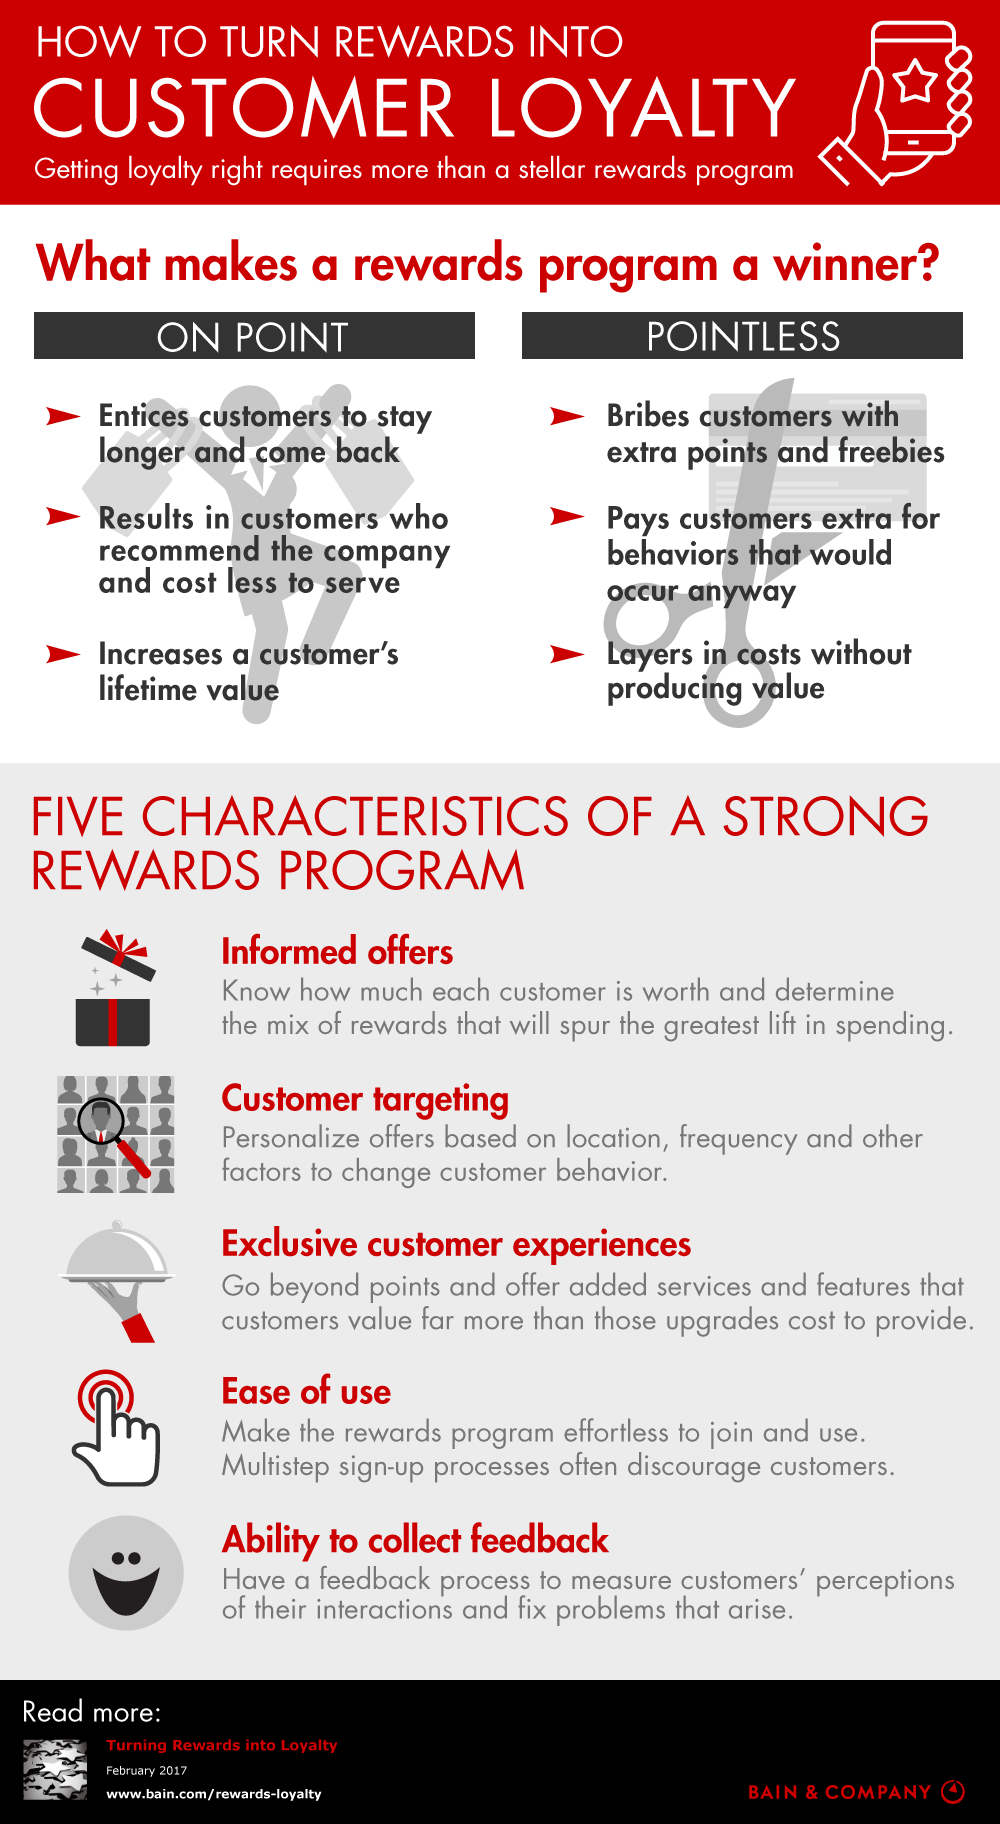 To generate customer loyalty, rewards programs should have five key characteristics.